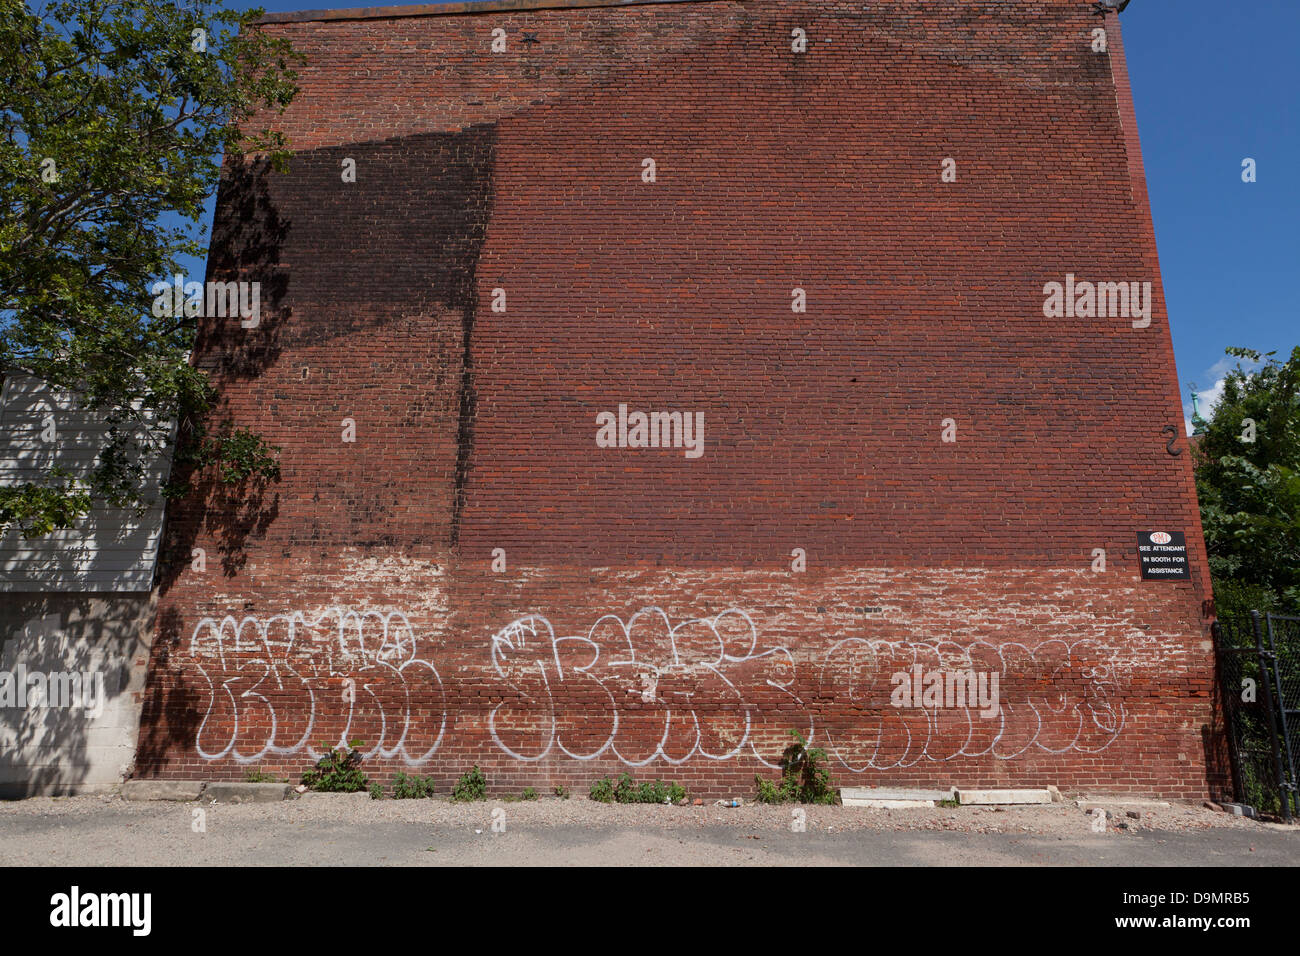 Graffiti On Side Of Brick Building